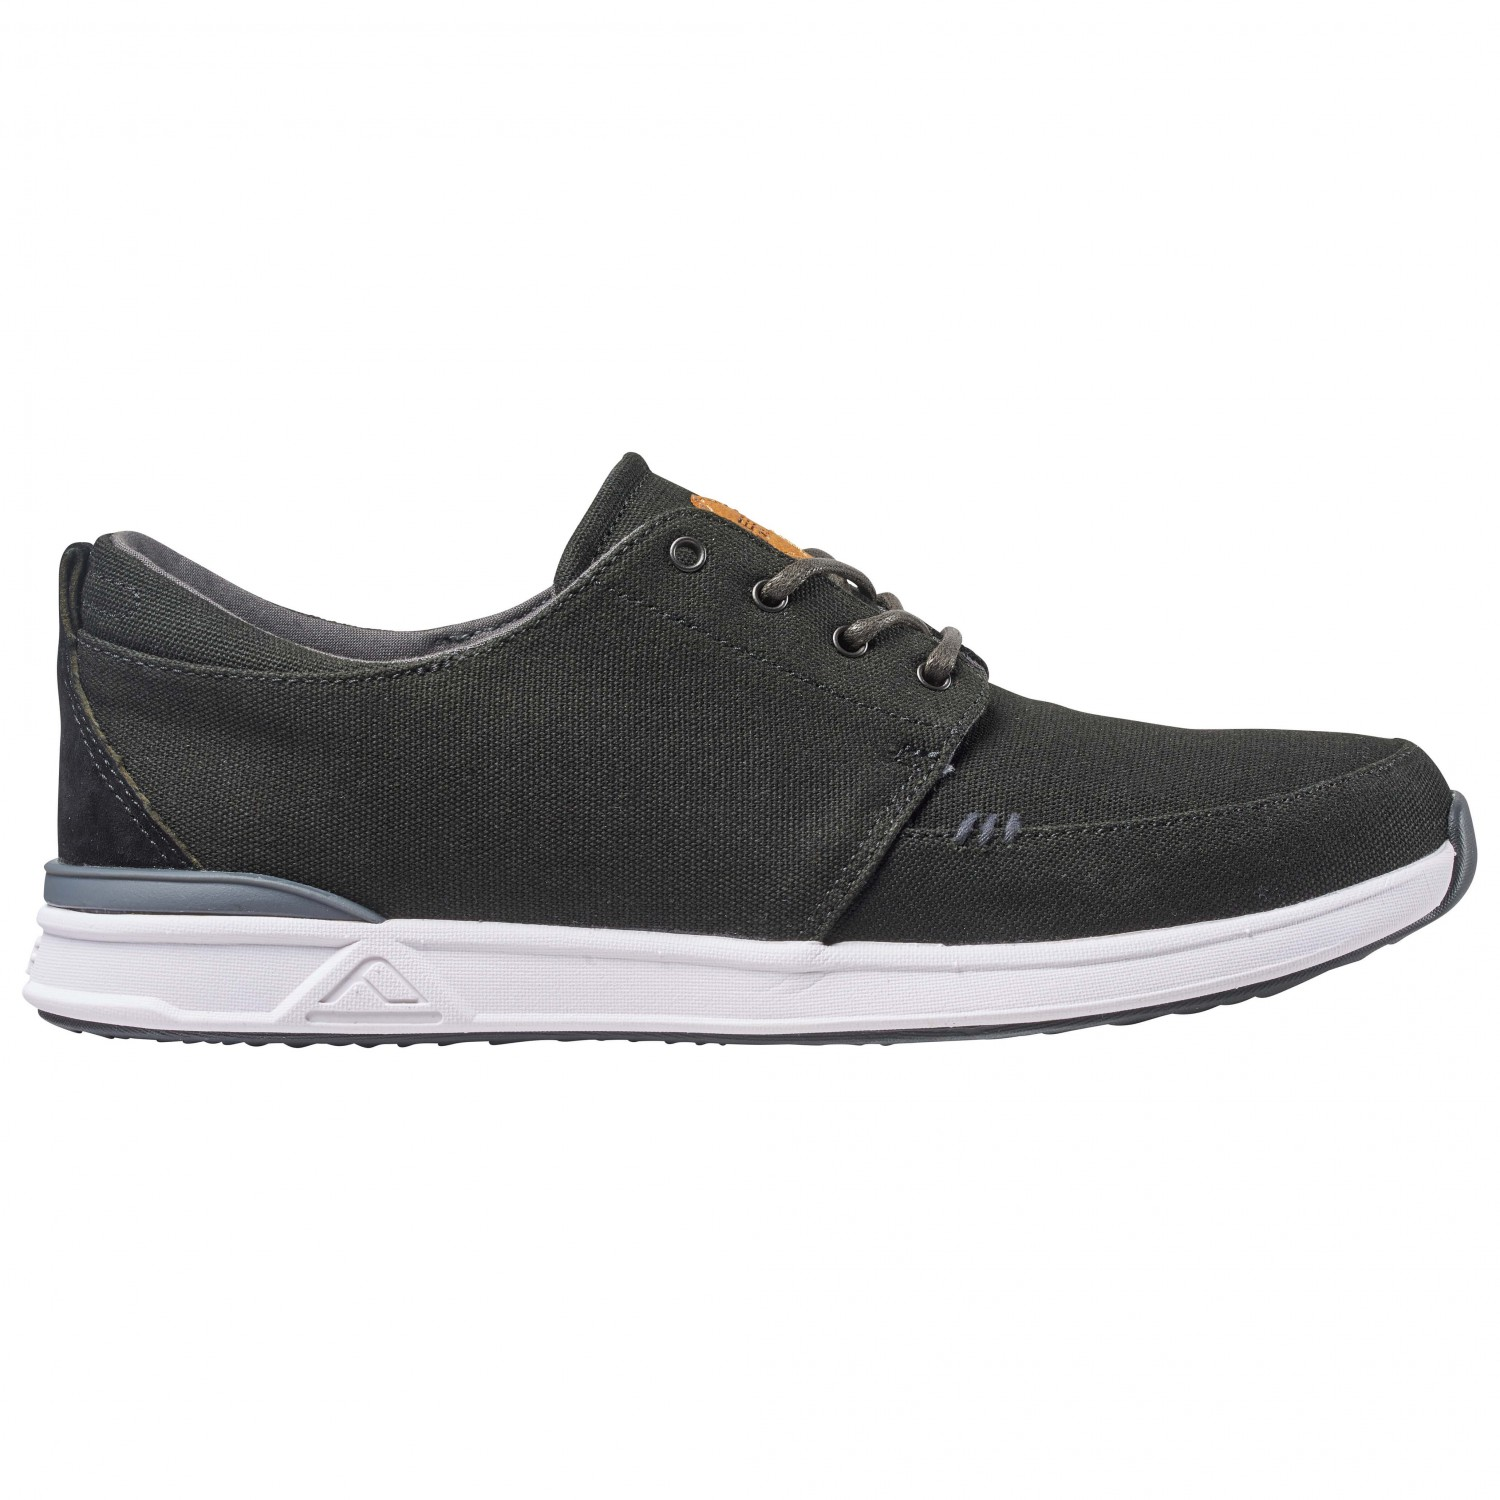 Reef - Rover Low - Sneaker Black / White